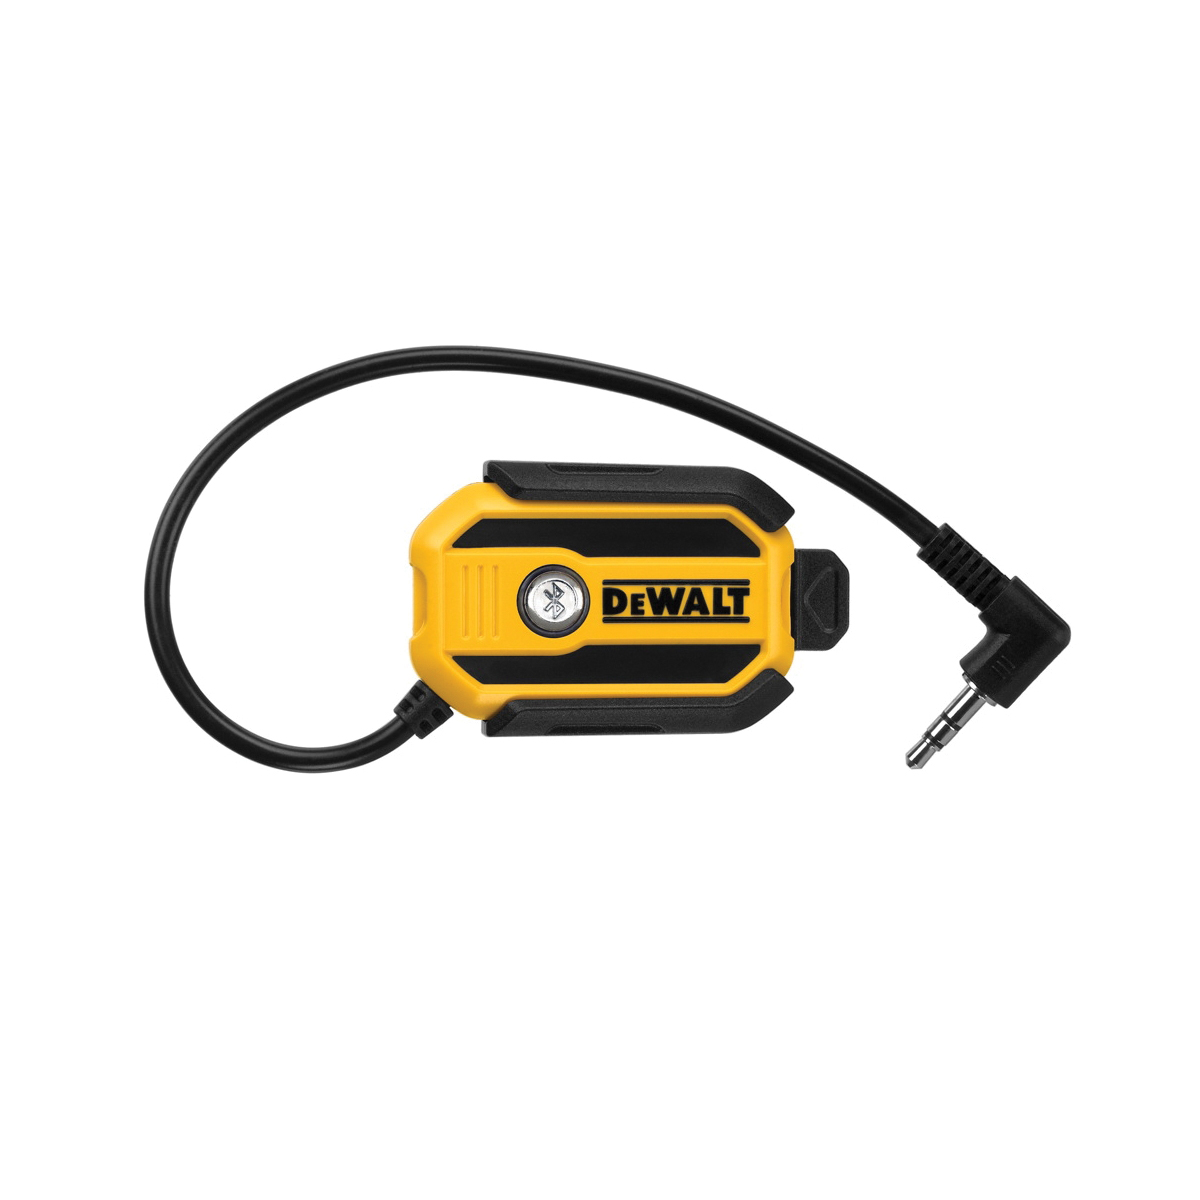 DeWALT® DCR002 Cordless Bluetooth Radio Adaptor, For Use With Any Radio with An Aux Port to Receive a Bluetooth Signal